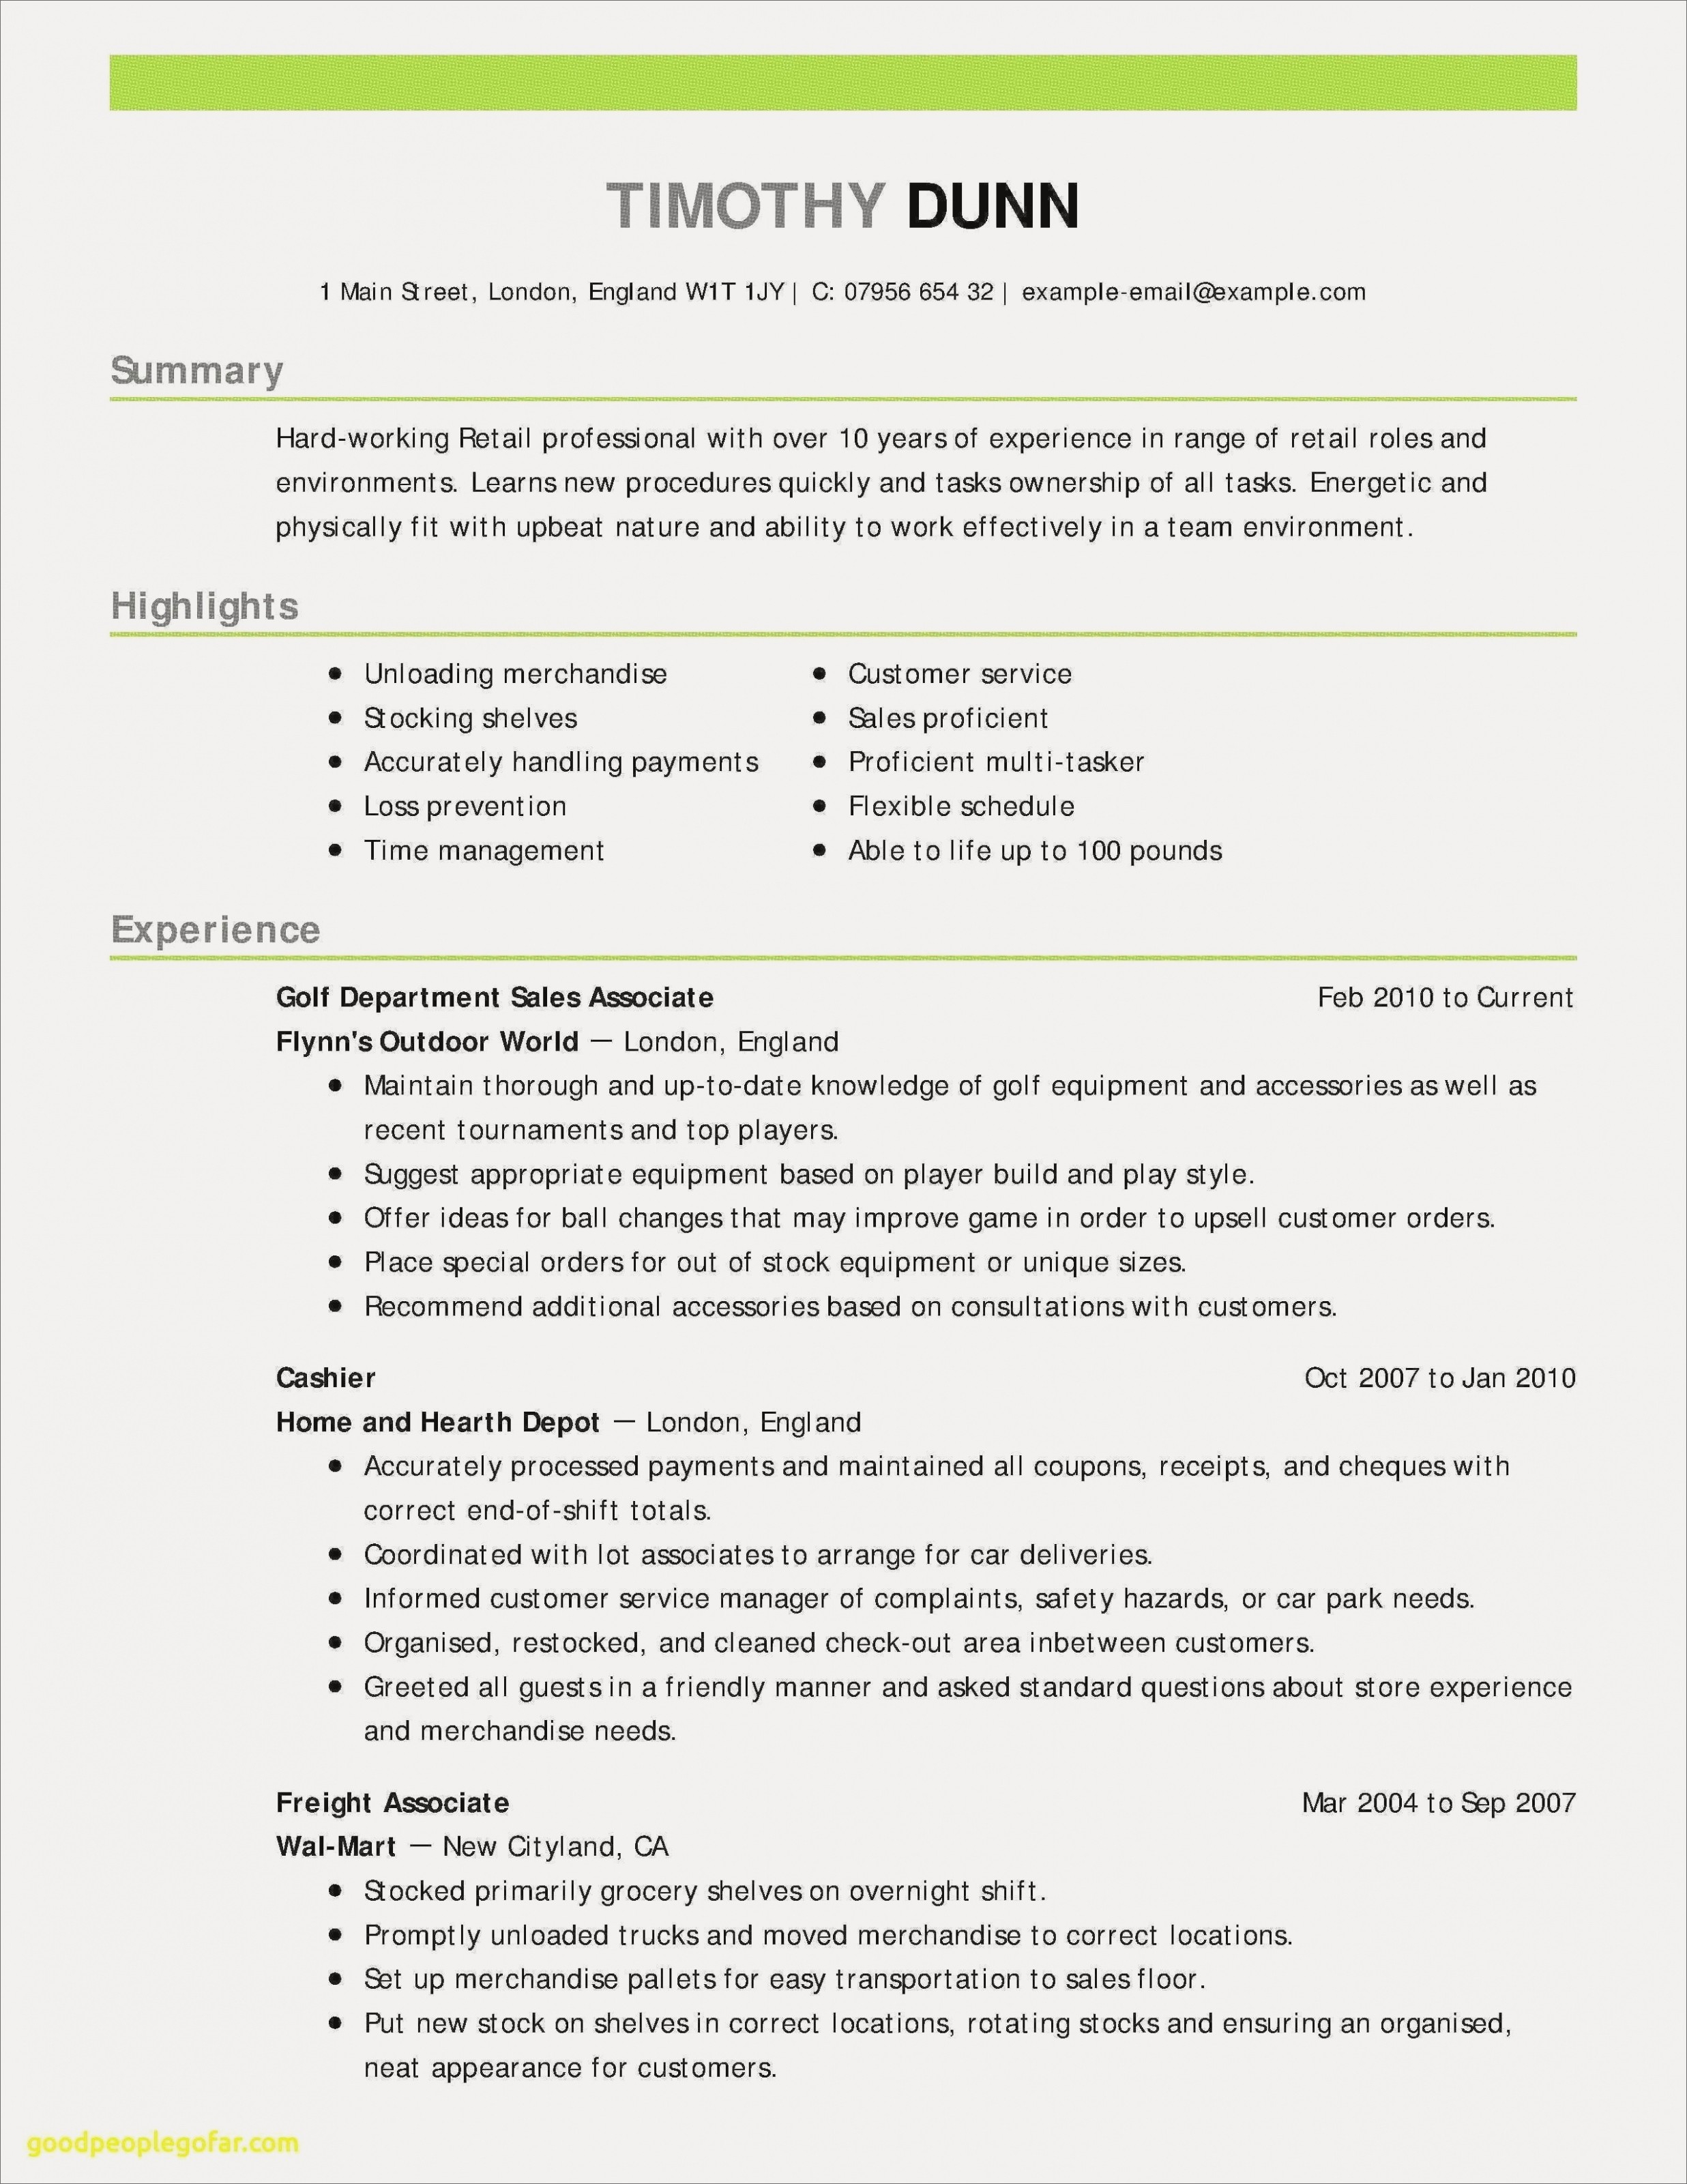 Professional Experience Resume - Customer Service Experience Resume Refrence Customer Service Resume